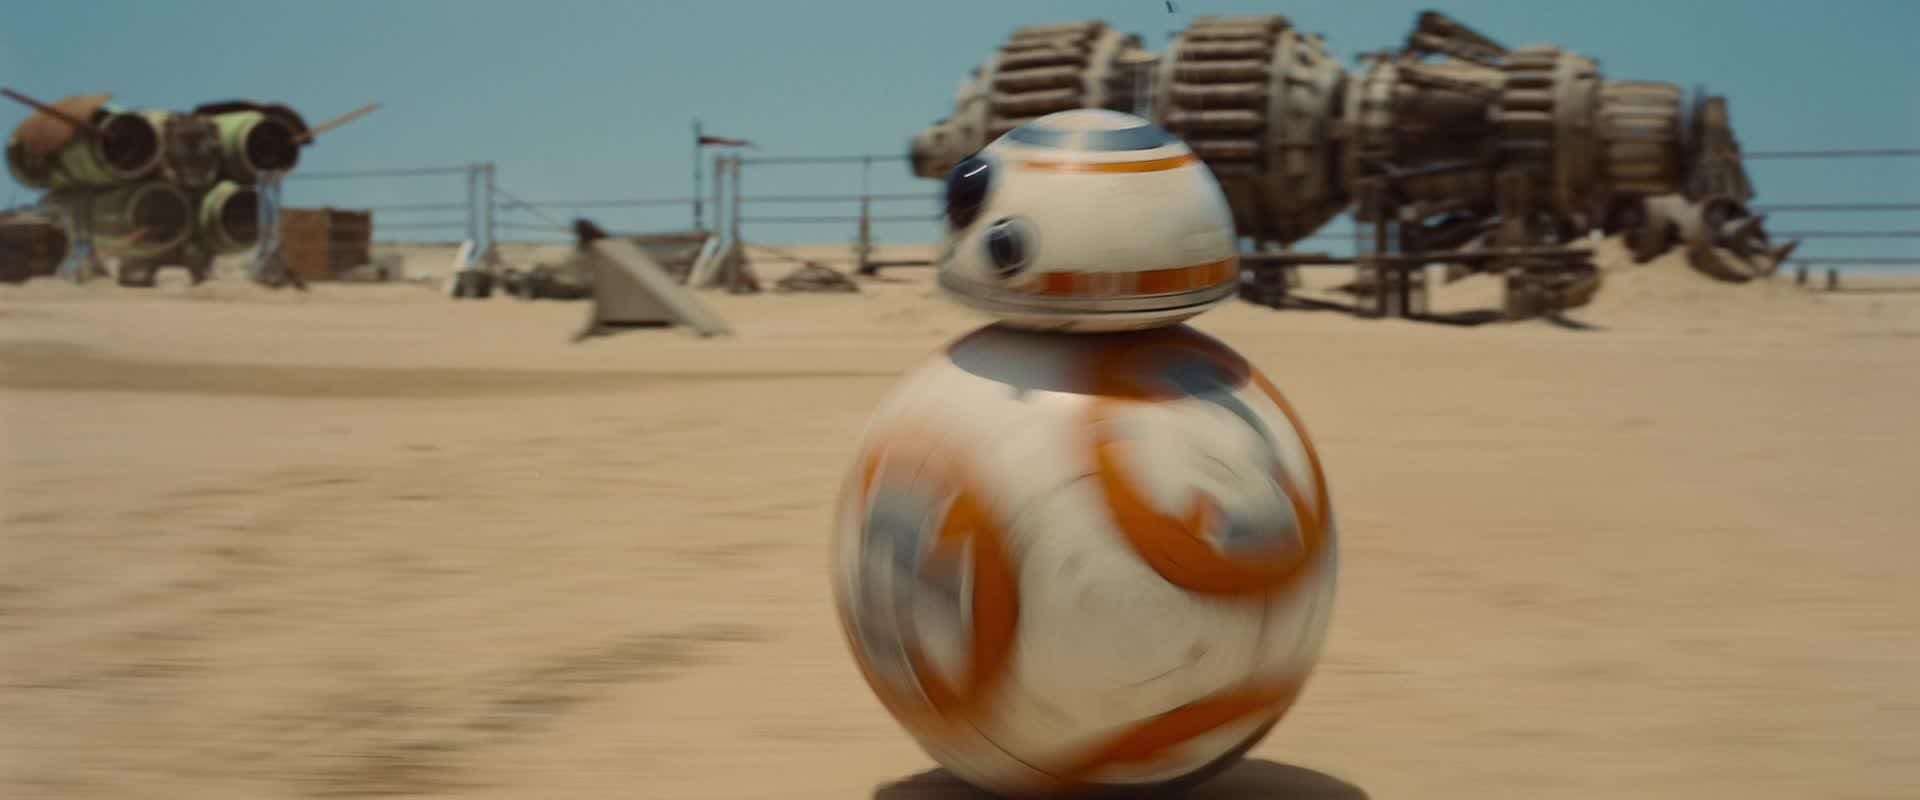 Star Wars: The Force Awakens - Teaser Trailer 1